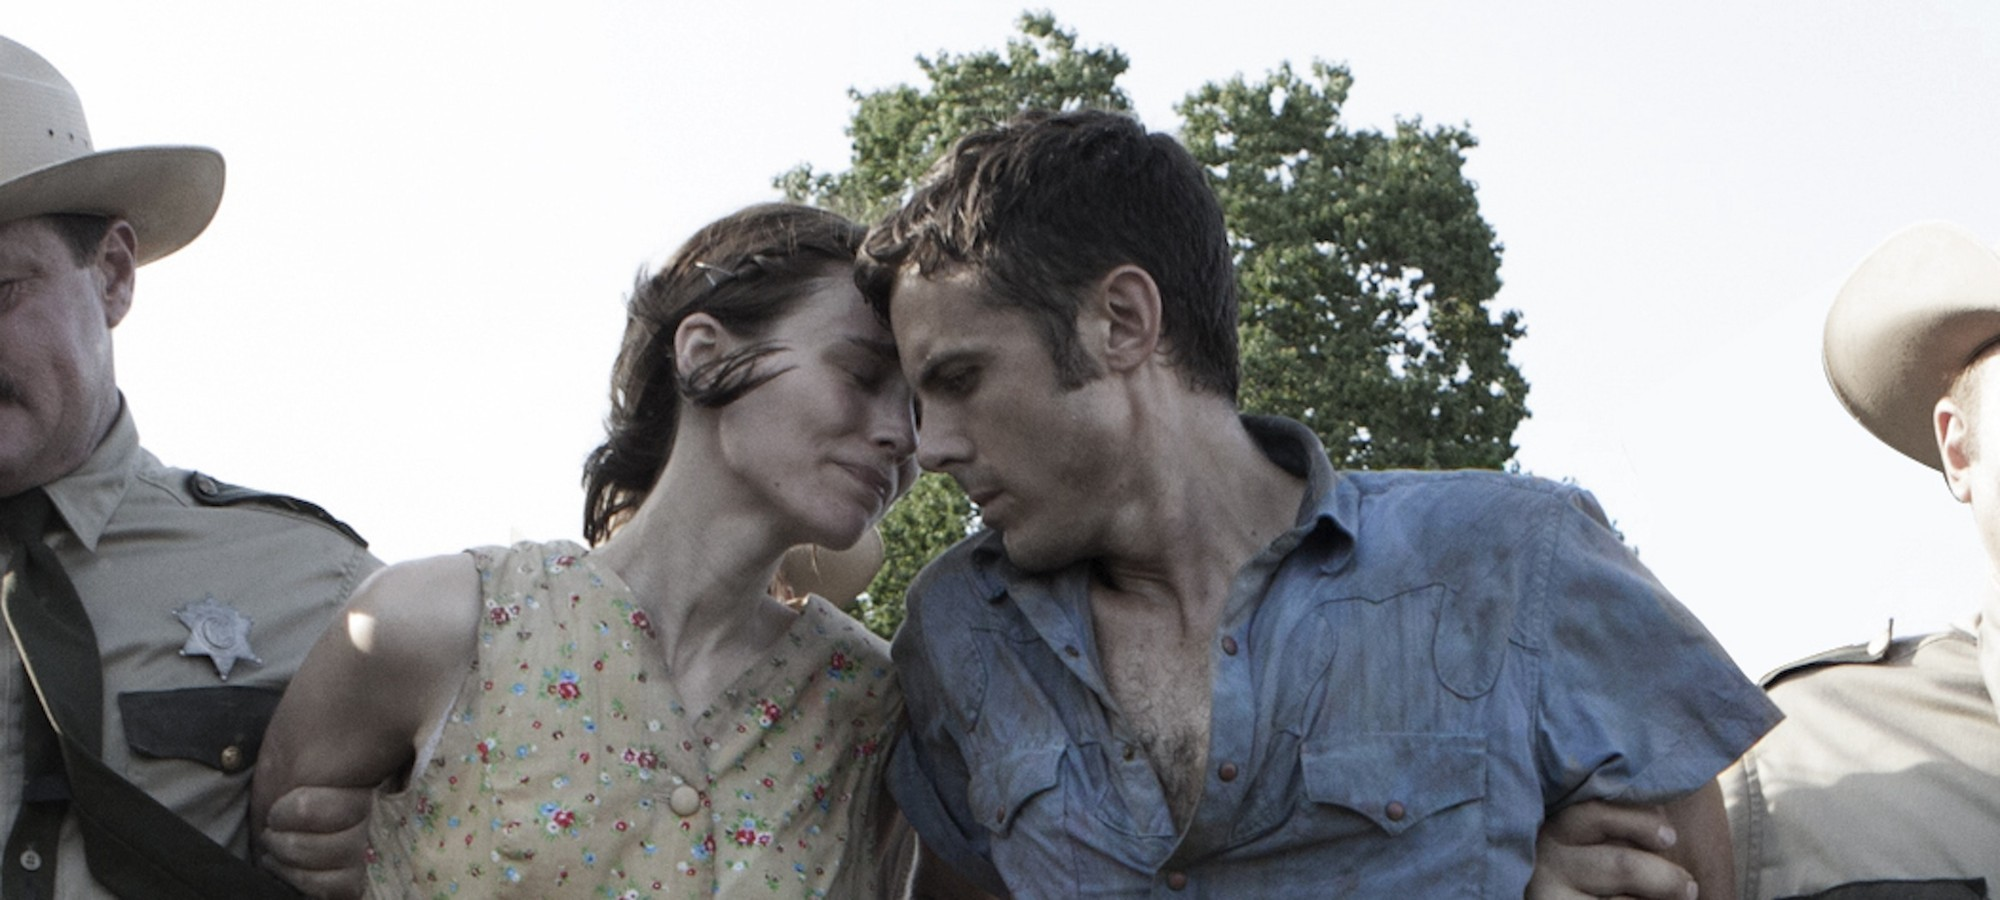 Ain't Them Bodies Saints Review: Molasses in Film Form